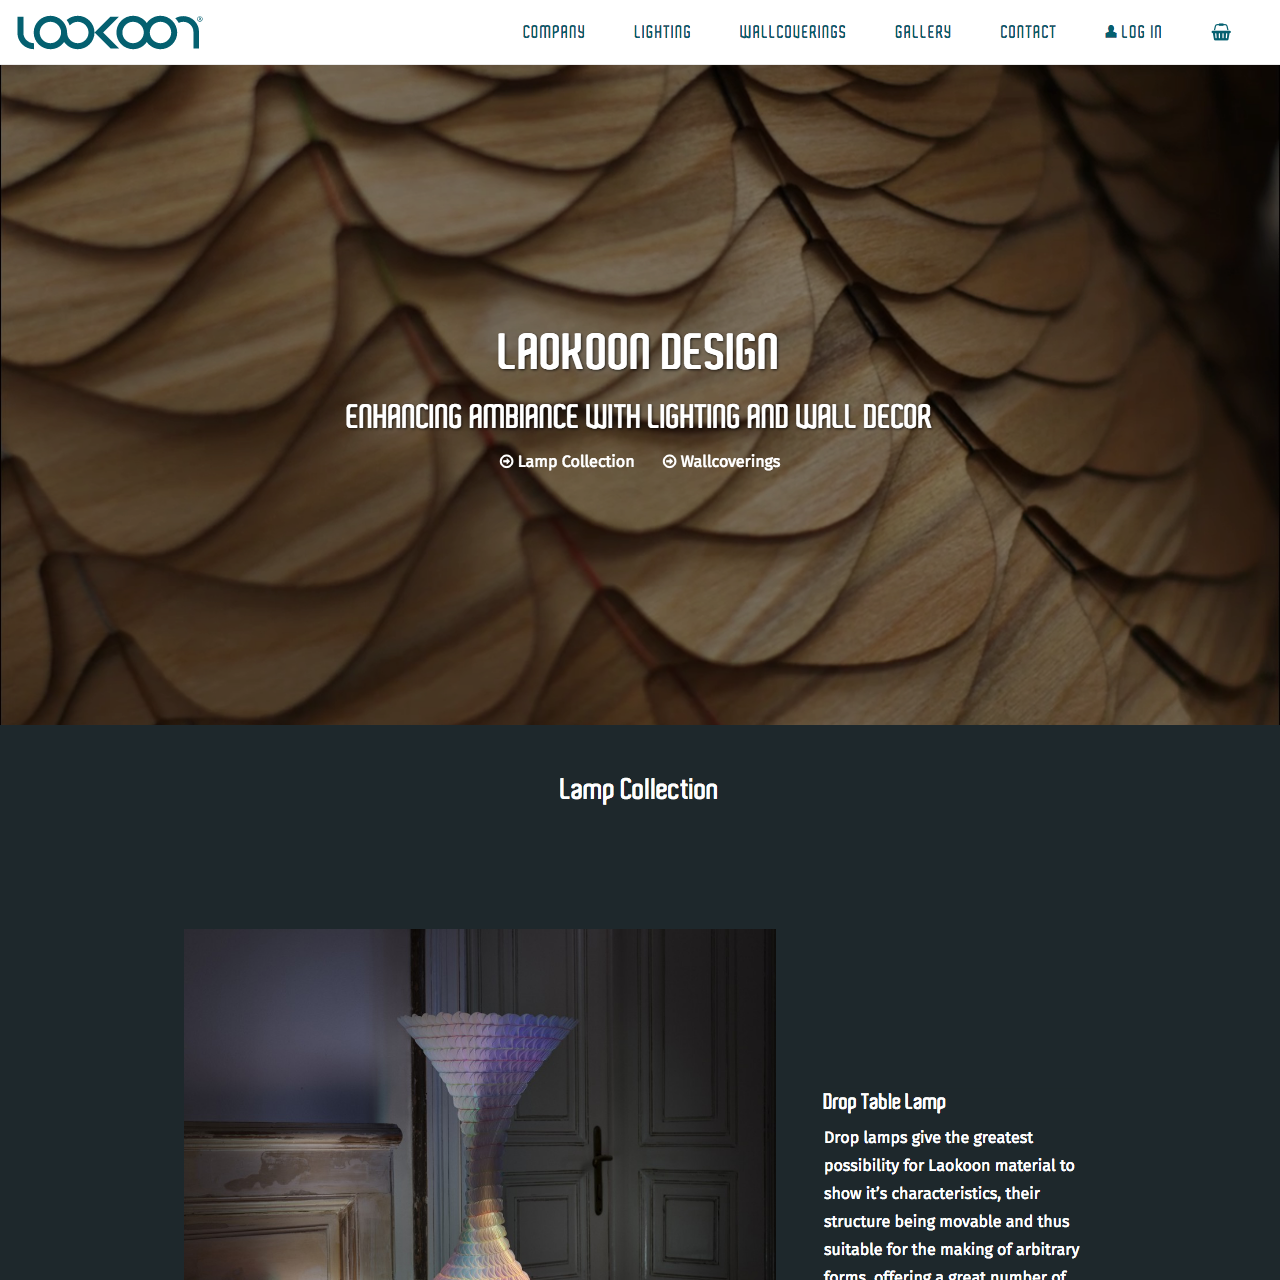 Laokoon Design